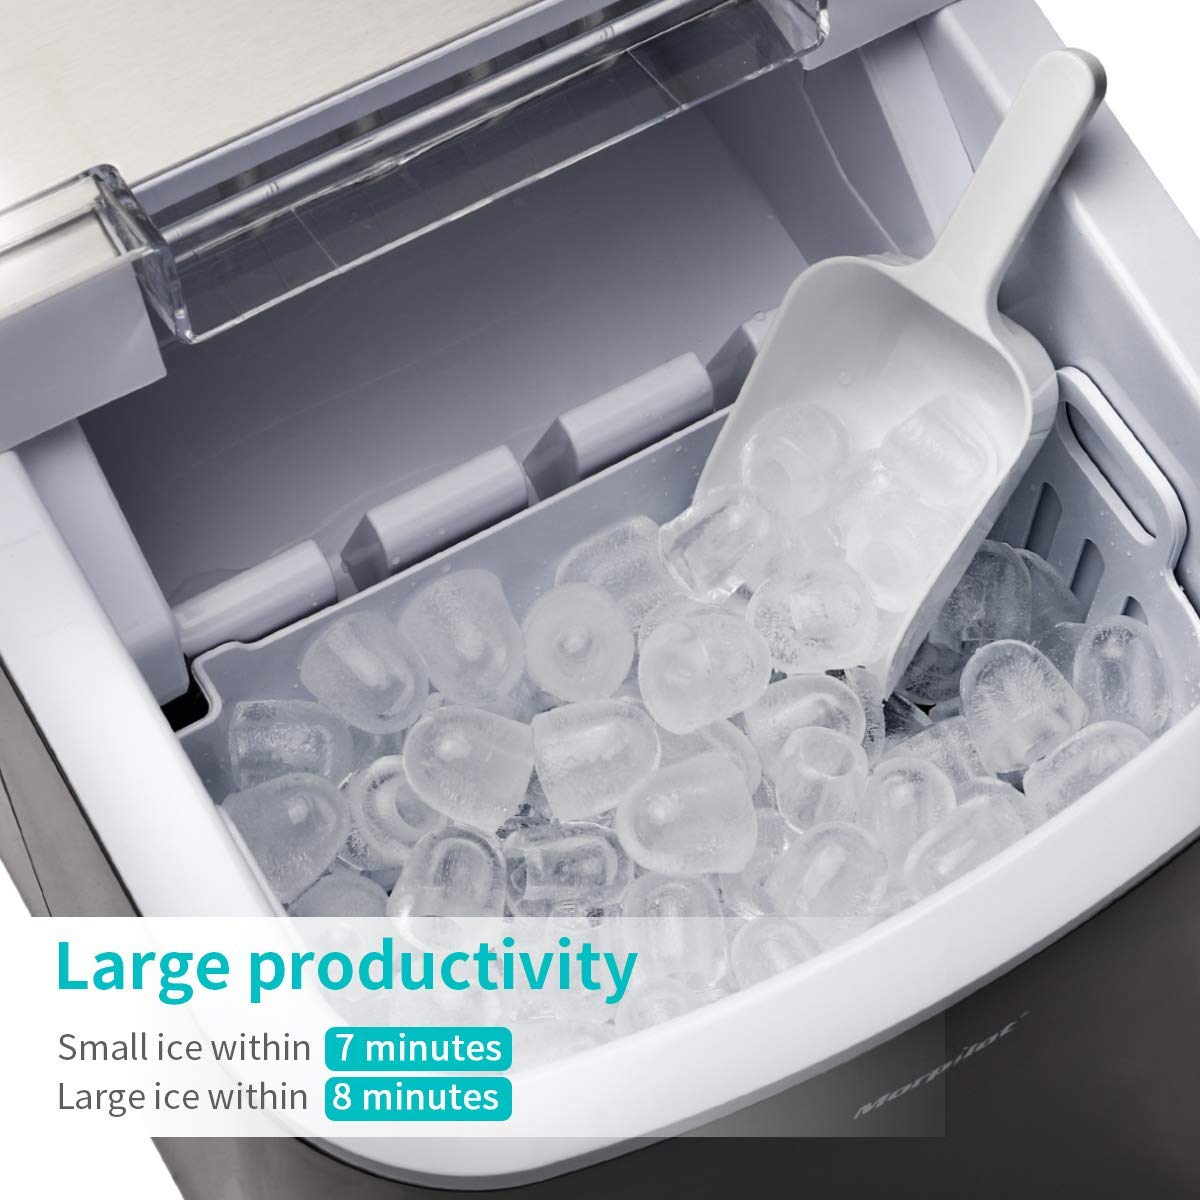 Ice Maker Machine, Ice Cube Maker, 2.1L Large Counter Top Ice Machine, 2 Size Ice Cube in 7 Mins, 12kg Ice in 24Hrs, LCD Display, Scoop and Removable Basket, No Plumbing Required, Auto Cleaning, 120W